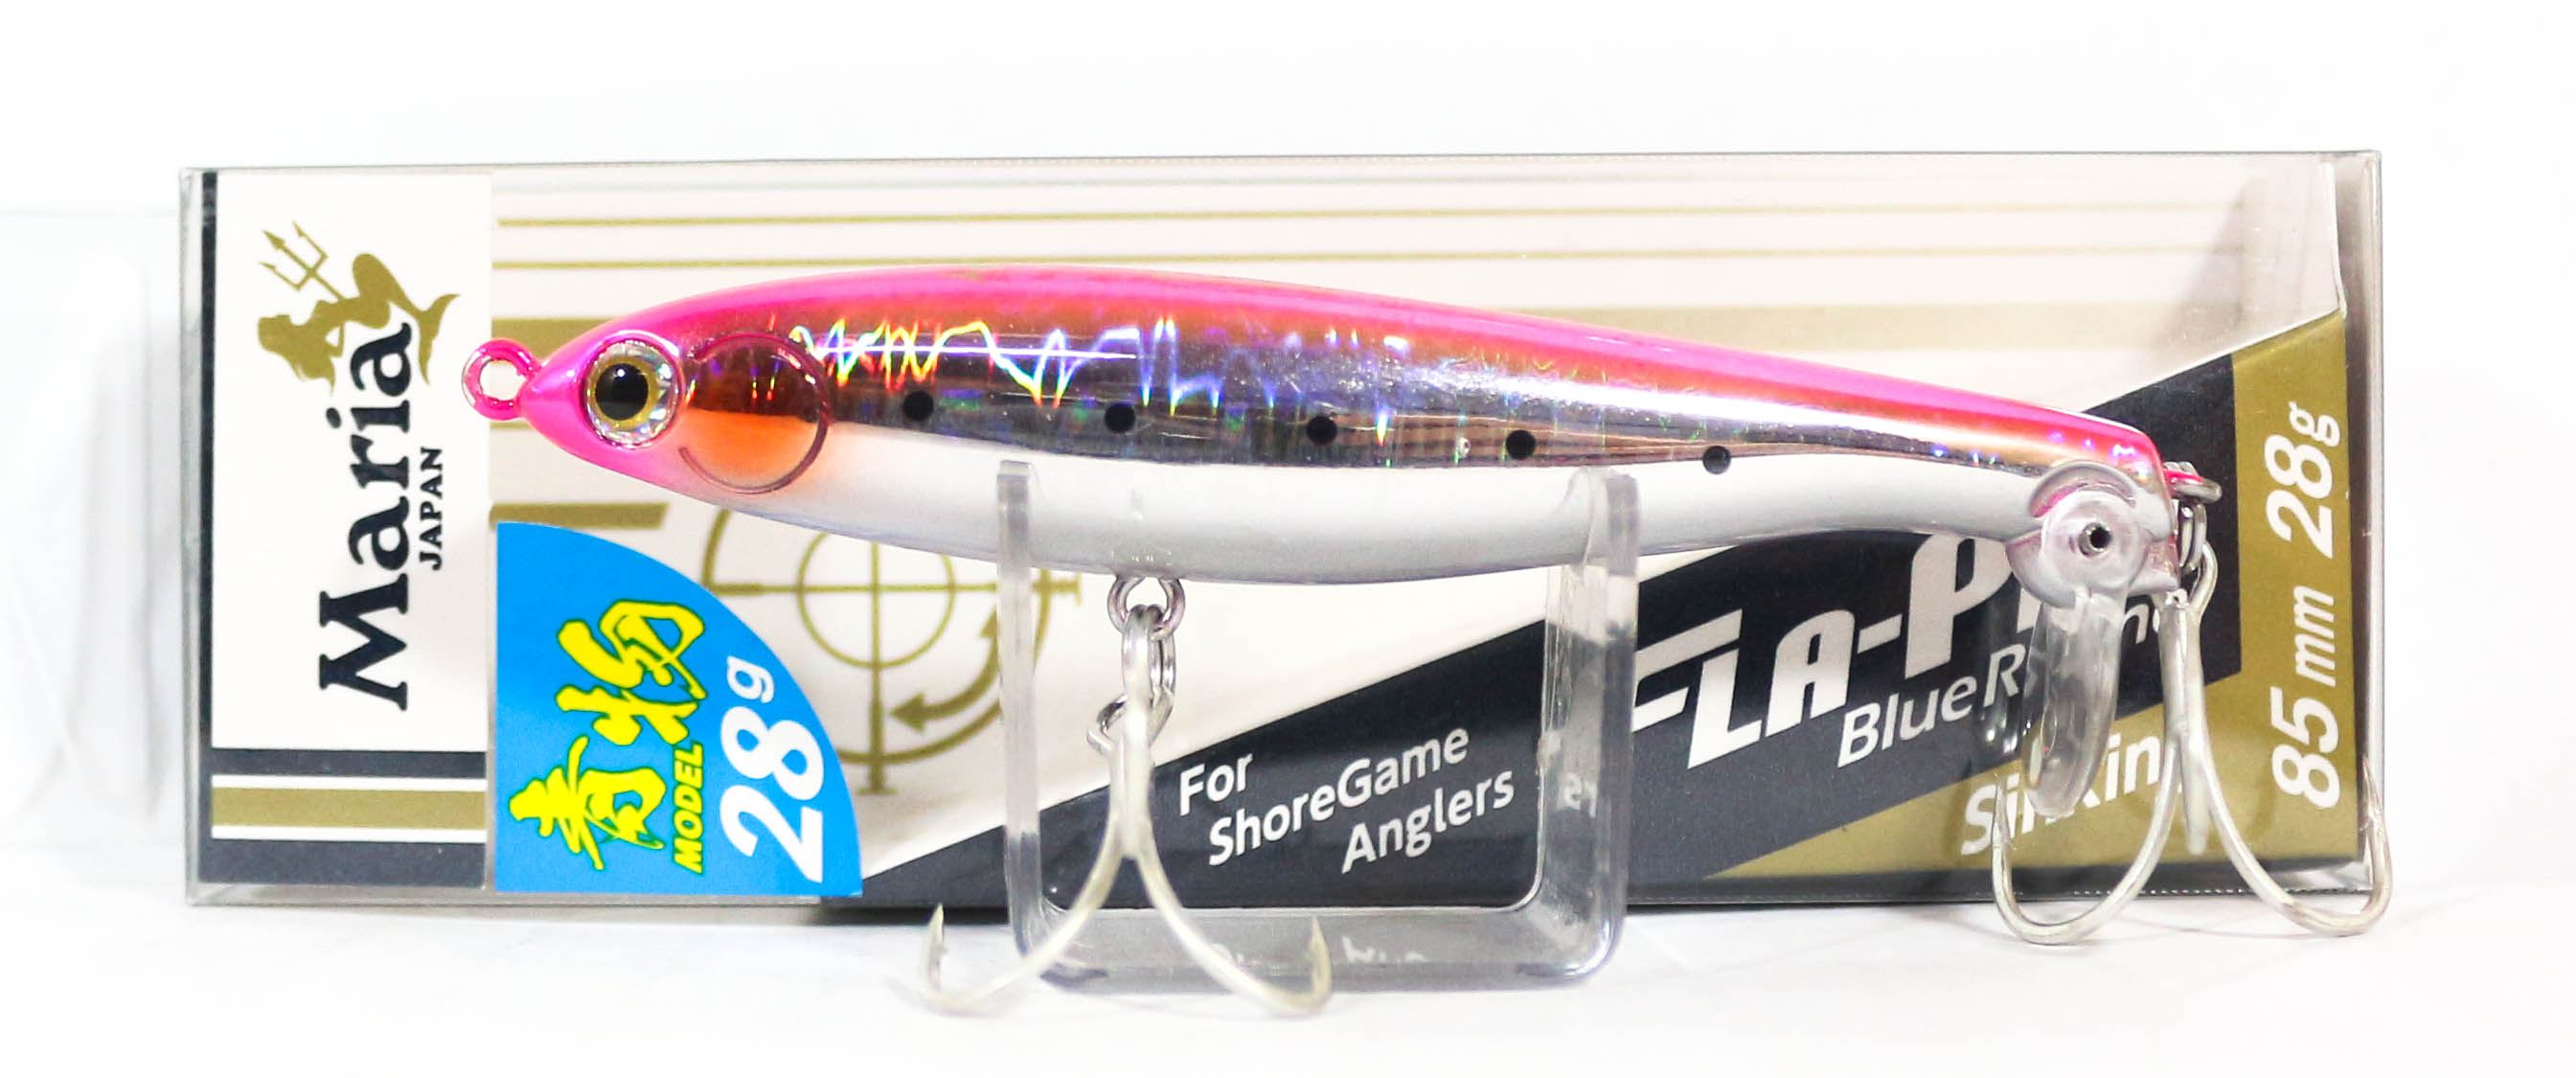 Maria Fla Pen S85 Fluttering Pencil Sinking Lure B08H (9794)